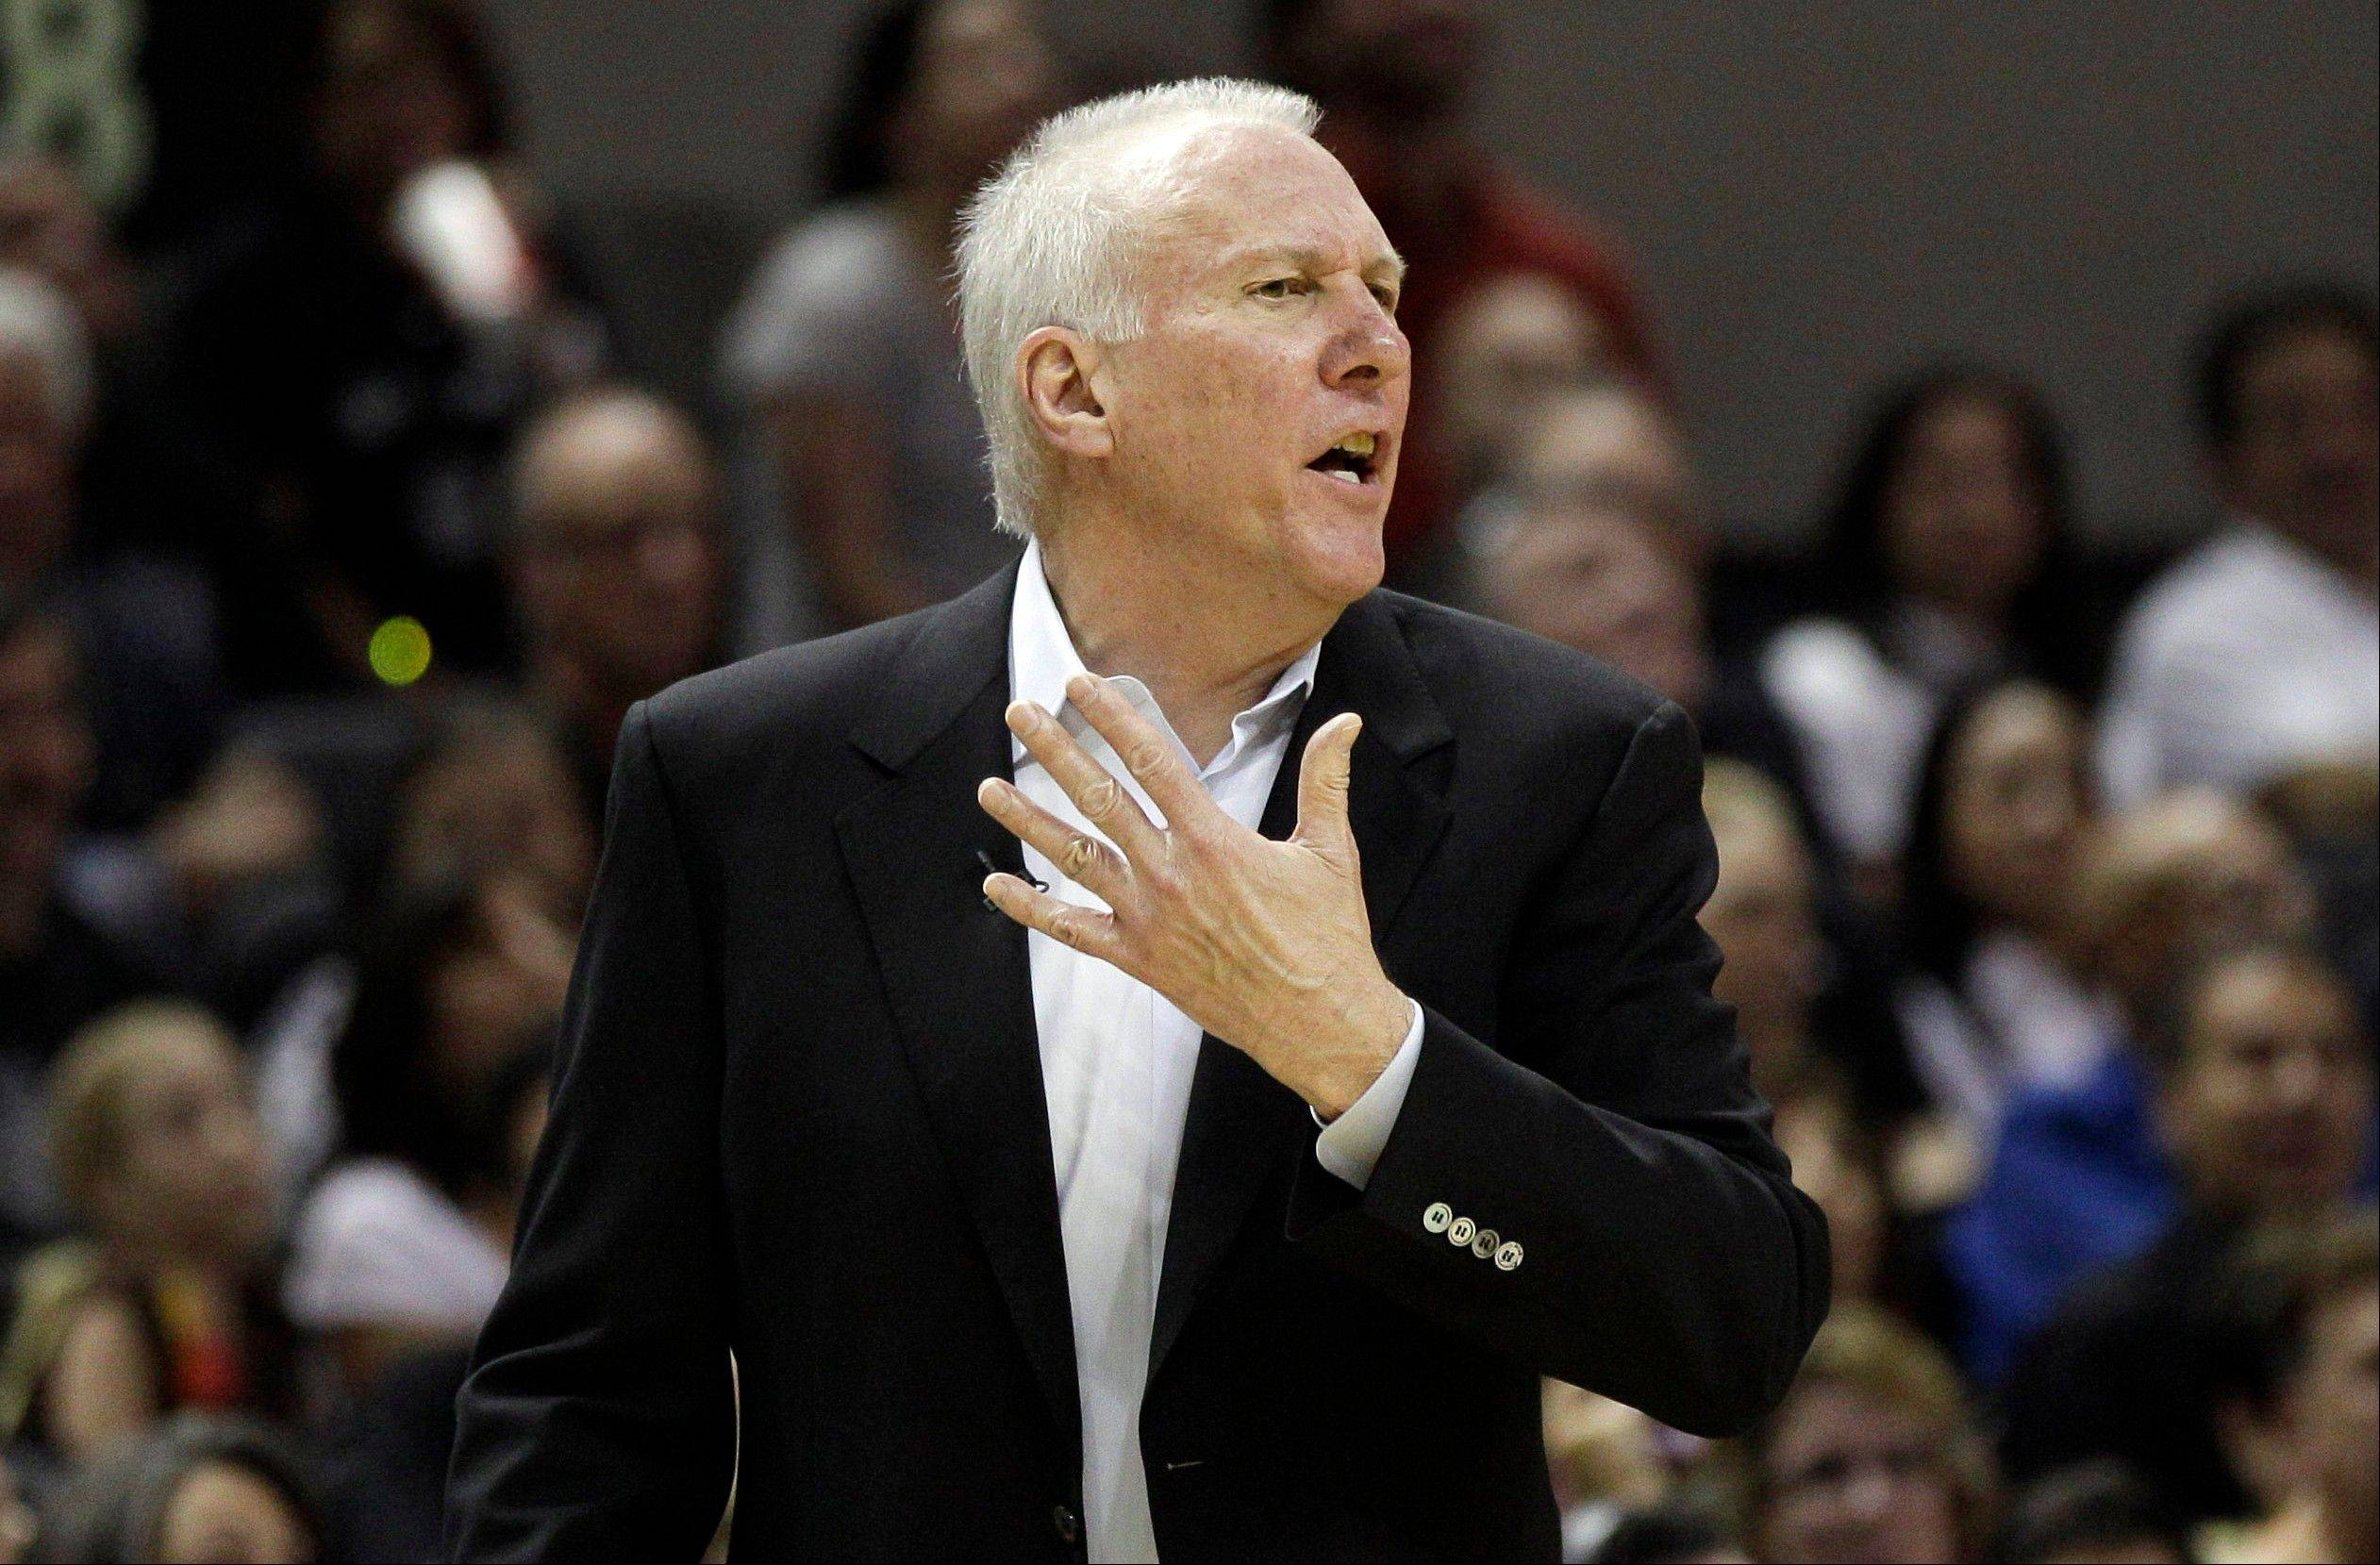 San Antonio Spurs head coach Gregg Popovich won Coach of the Year honors Tuesday over runner-up Tom Thibodeau of the Chicago Bulls. Both coaches led their teams to 50-16 records in the regular season.